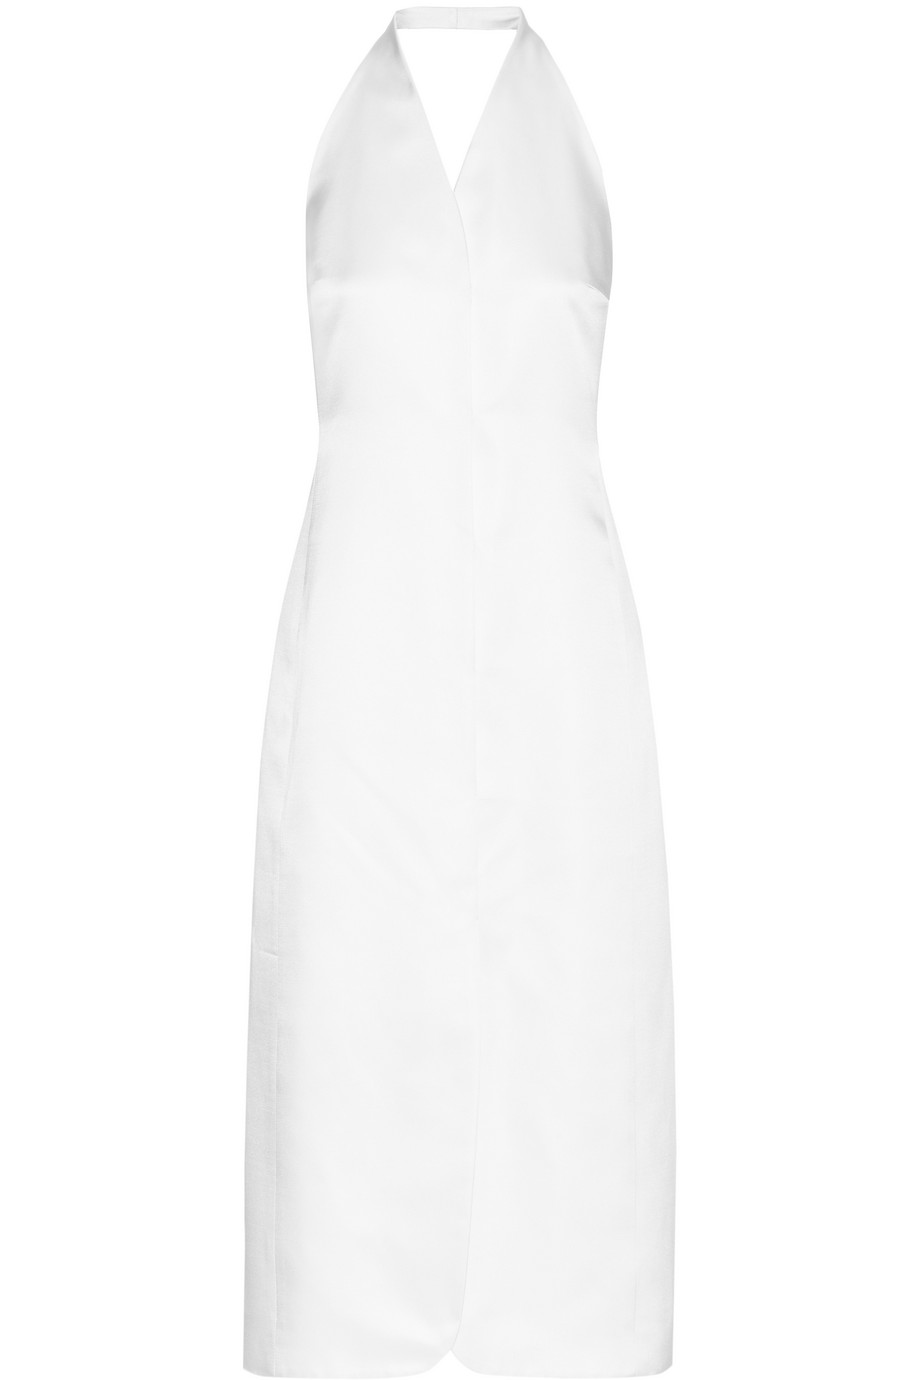 The Row Lieke Silk-Satin Halterneck Midi Dress, Off-White, Women's, Size: 10